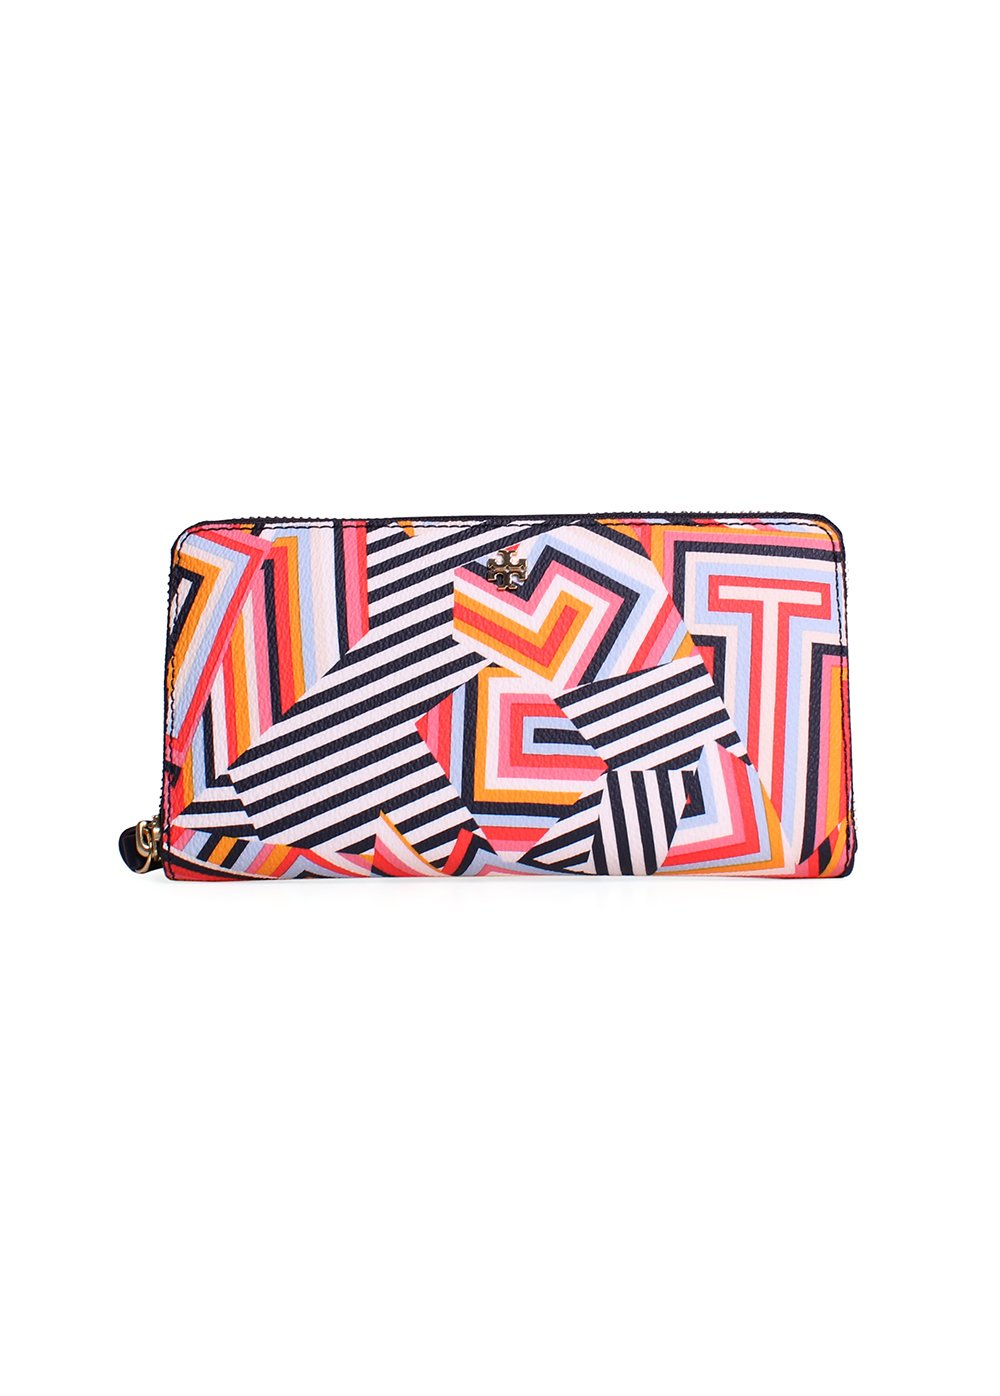 Tory Burch Kerrington Zip Around Continental Wallet Style No. 12169120 (Cut Out T Print)